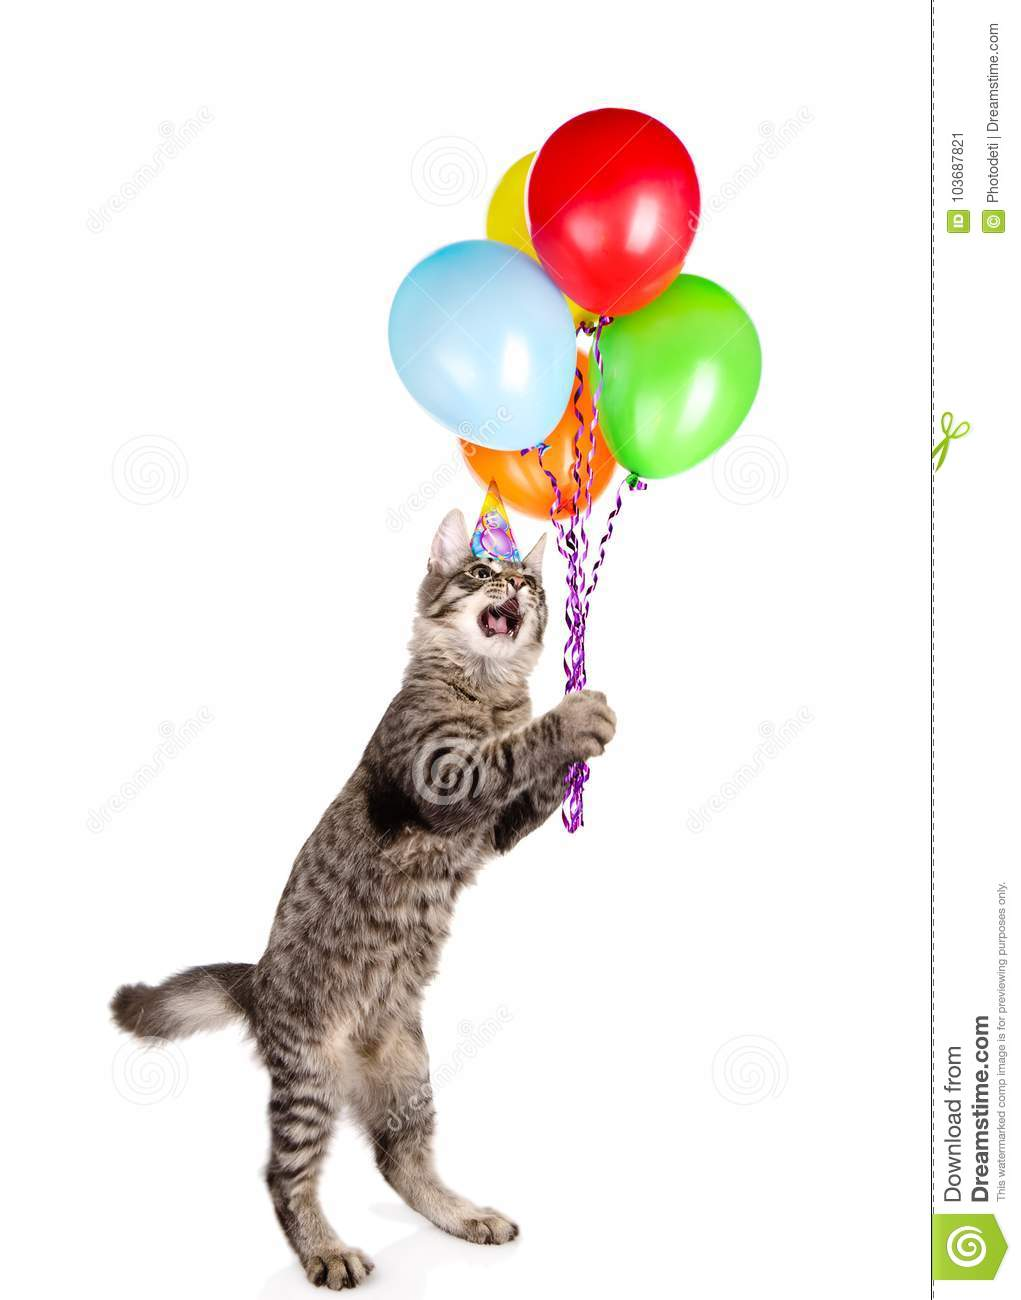 Cat In Birthday Hat Holding Balloons Isolated On White Background